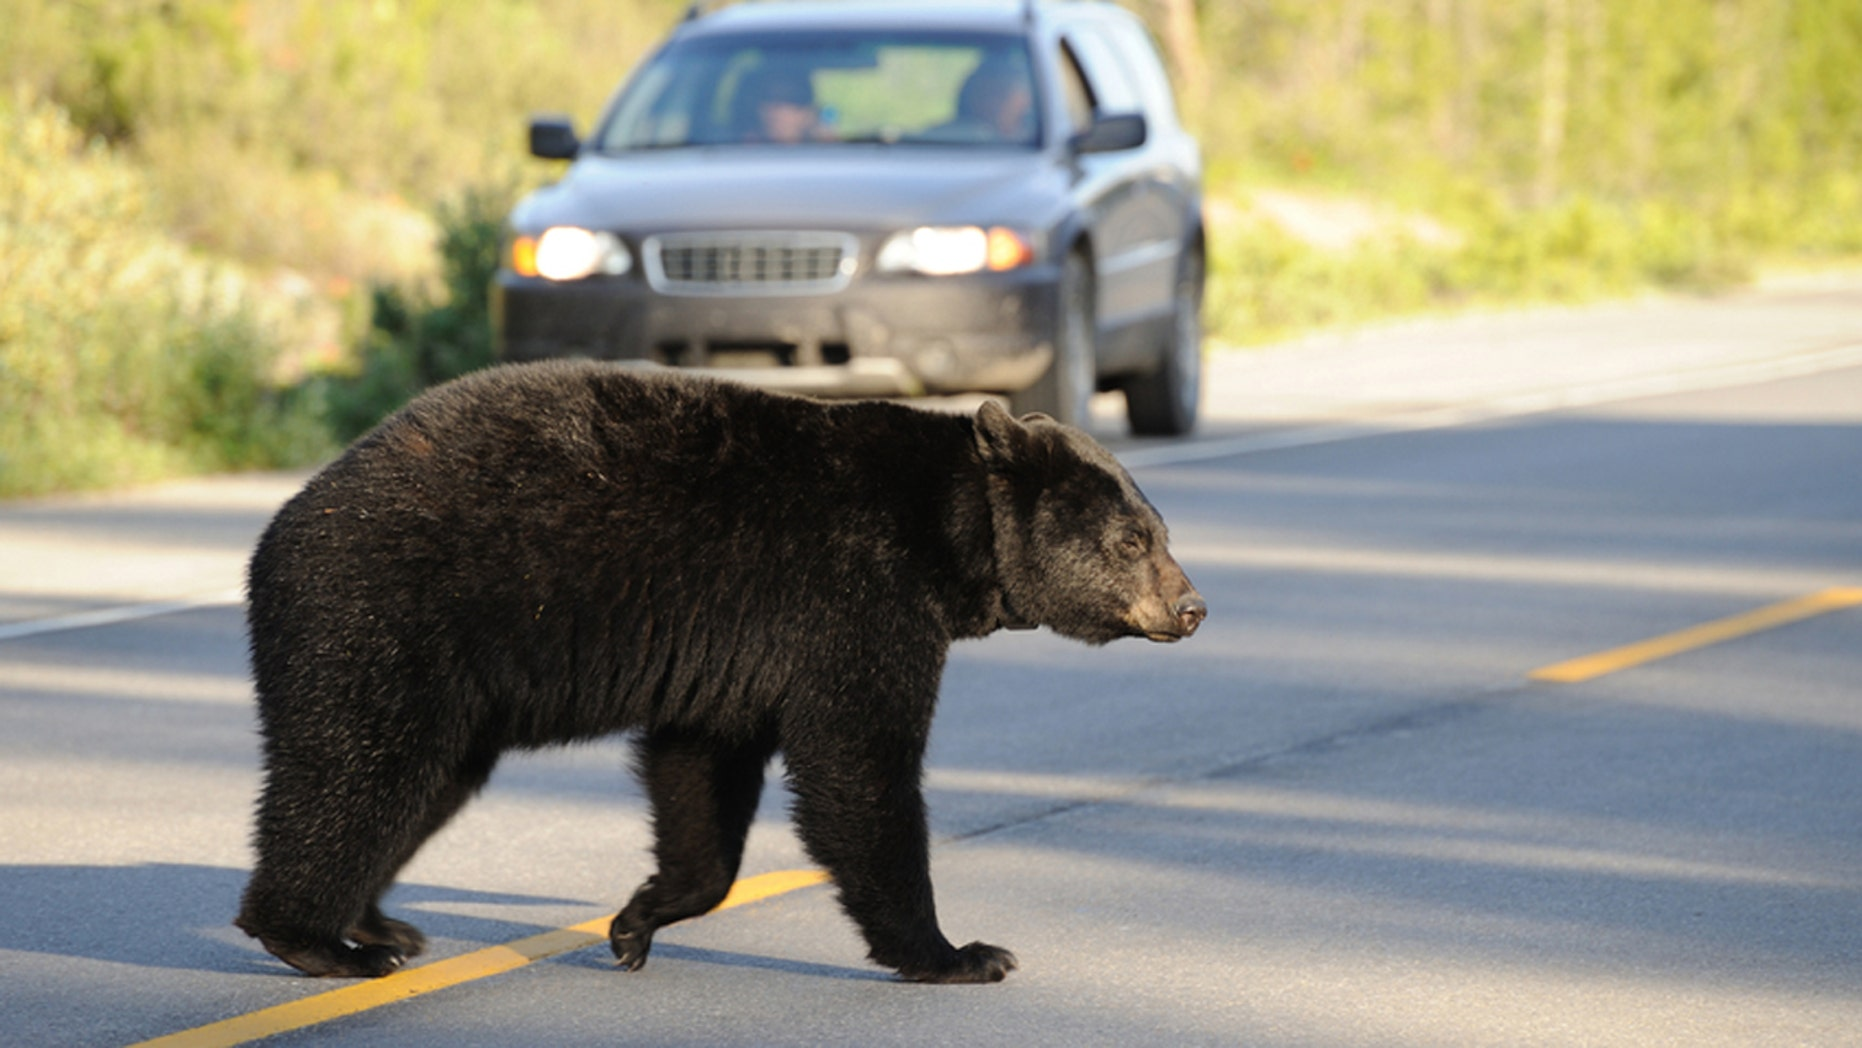 A North Carolina woman said a bear prevented her from getting her package on time.